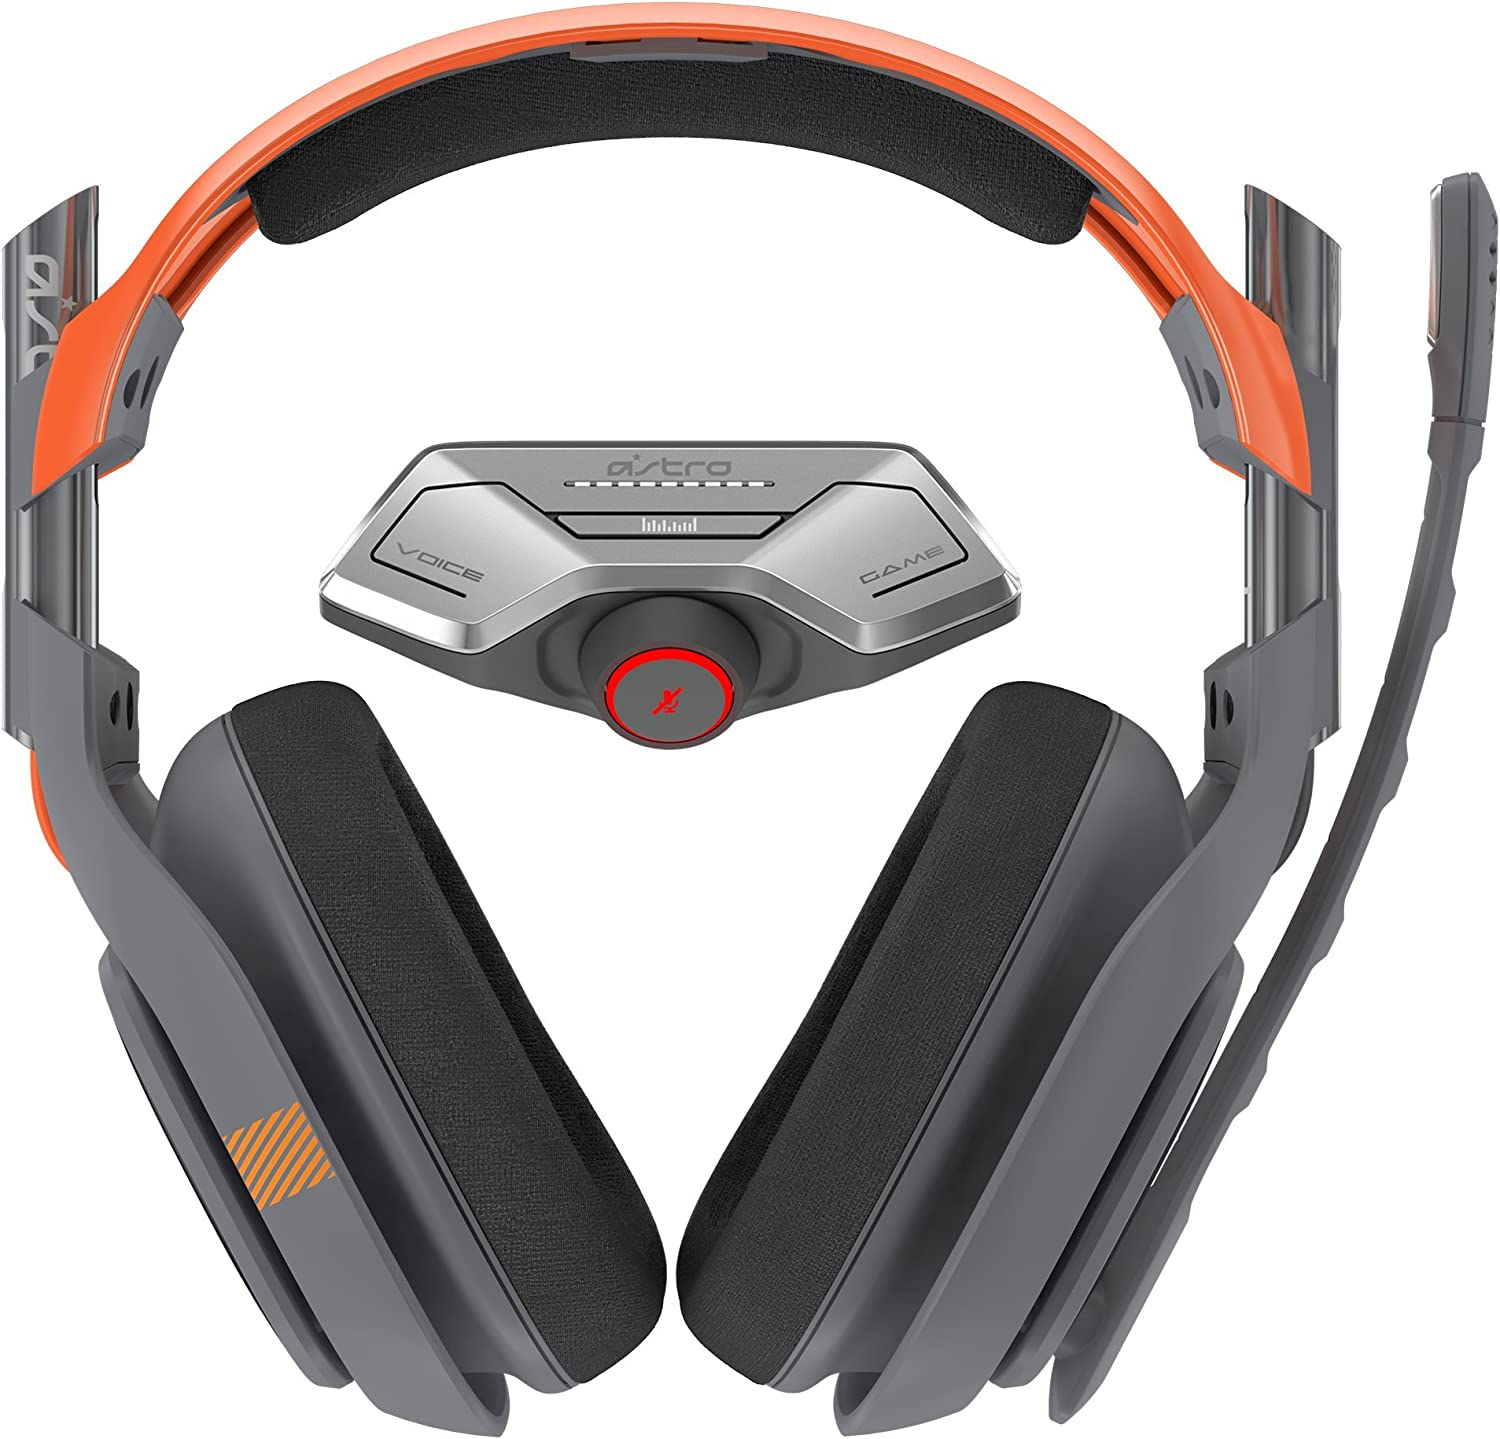 f996e8694a9 Amazon.com: ASTRO Gaming A40 Headset + Mixamp M80 - Halo 5 Special Edition  - Xbox One (2015 model): Video Games